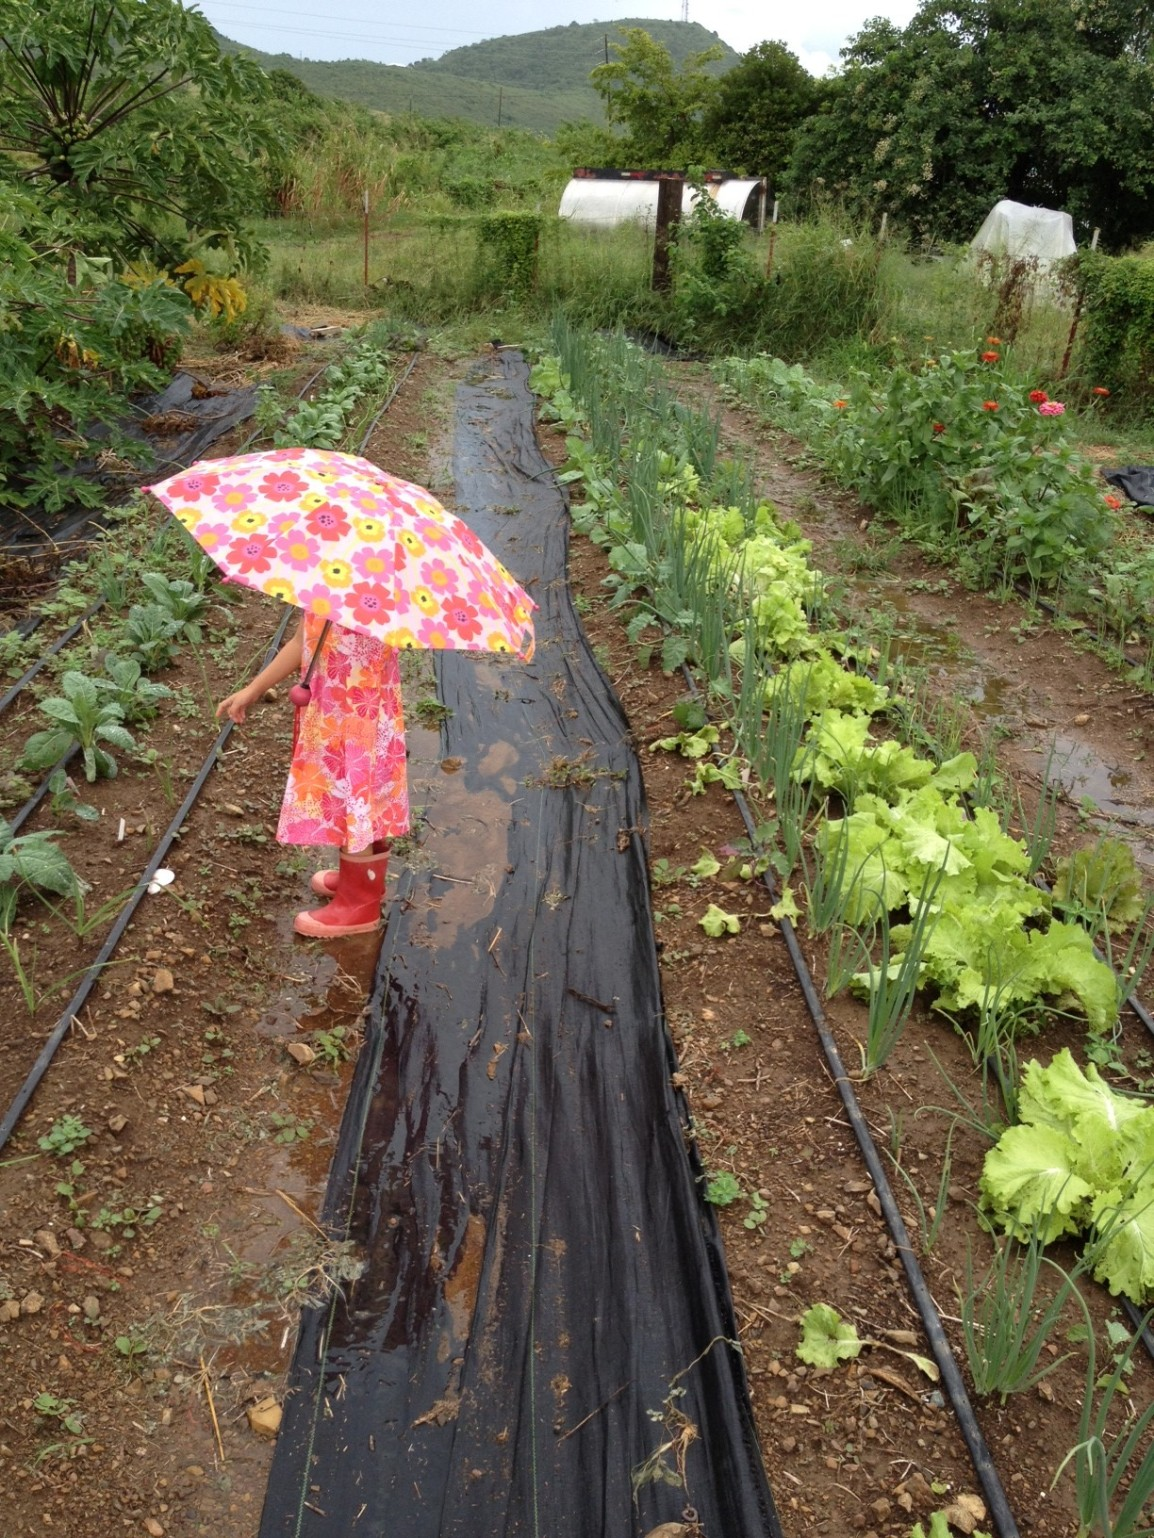 Small person in flowery dress with rubber rain boots and flowery umbrella among the flowers and herb rows at ARTfarm on a very rainy day.